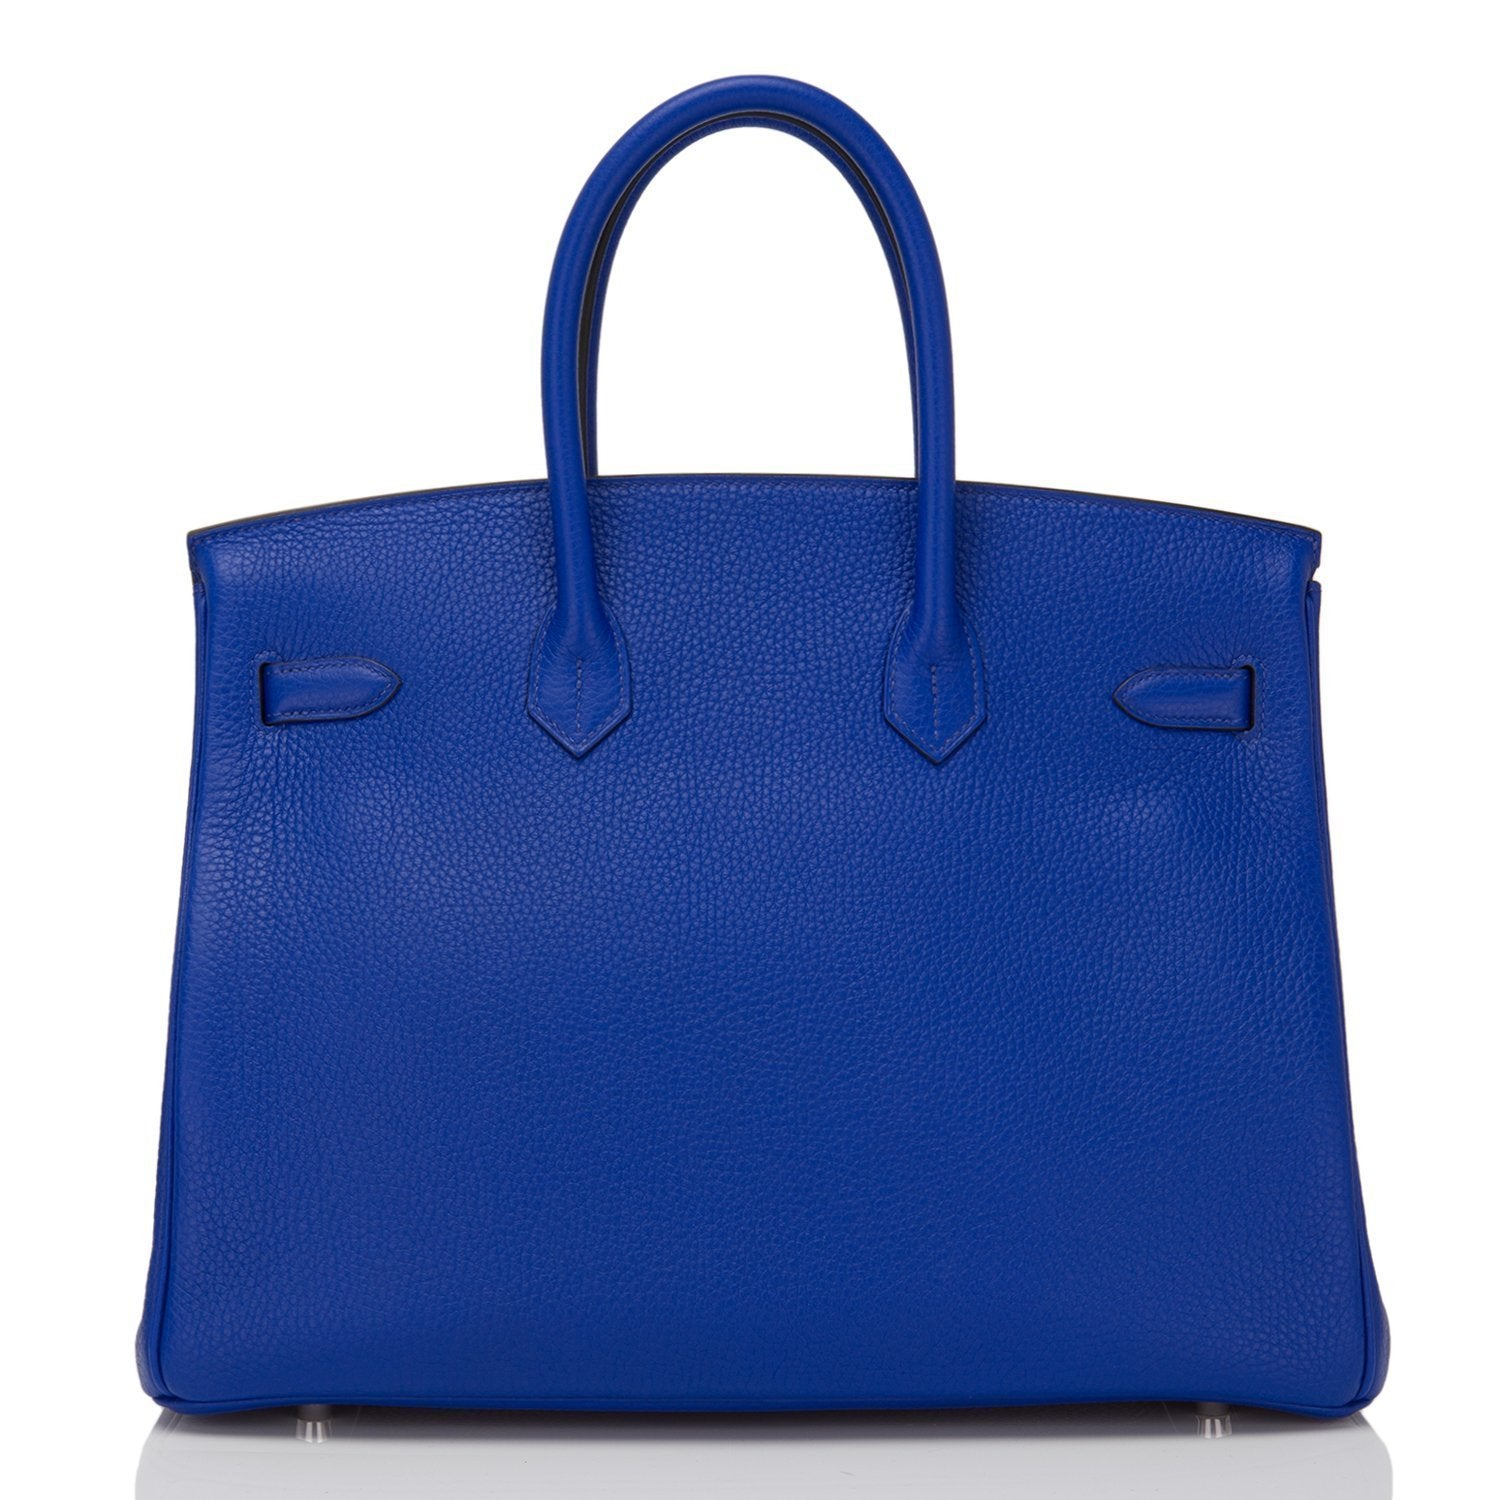 Hermes Blue Electric Togo Birkin 35Cm Palladium Hardware Handbags